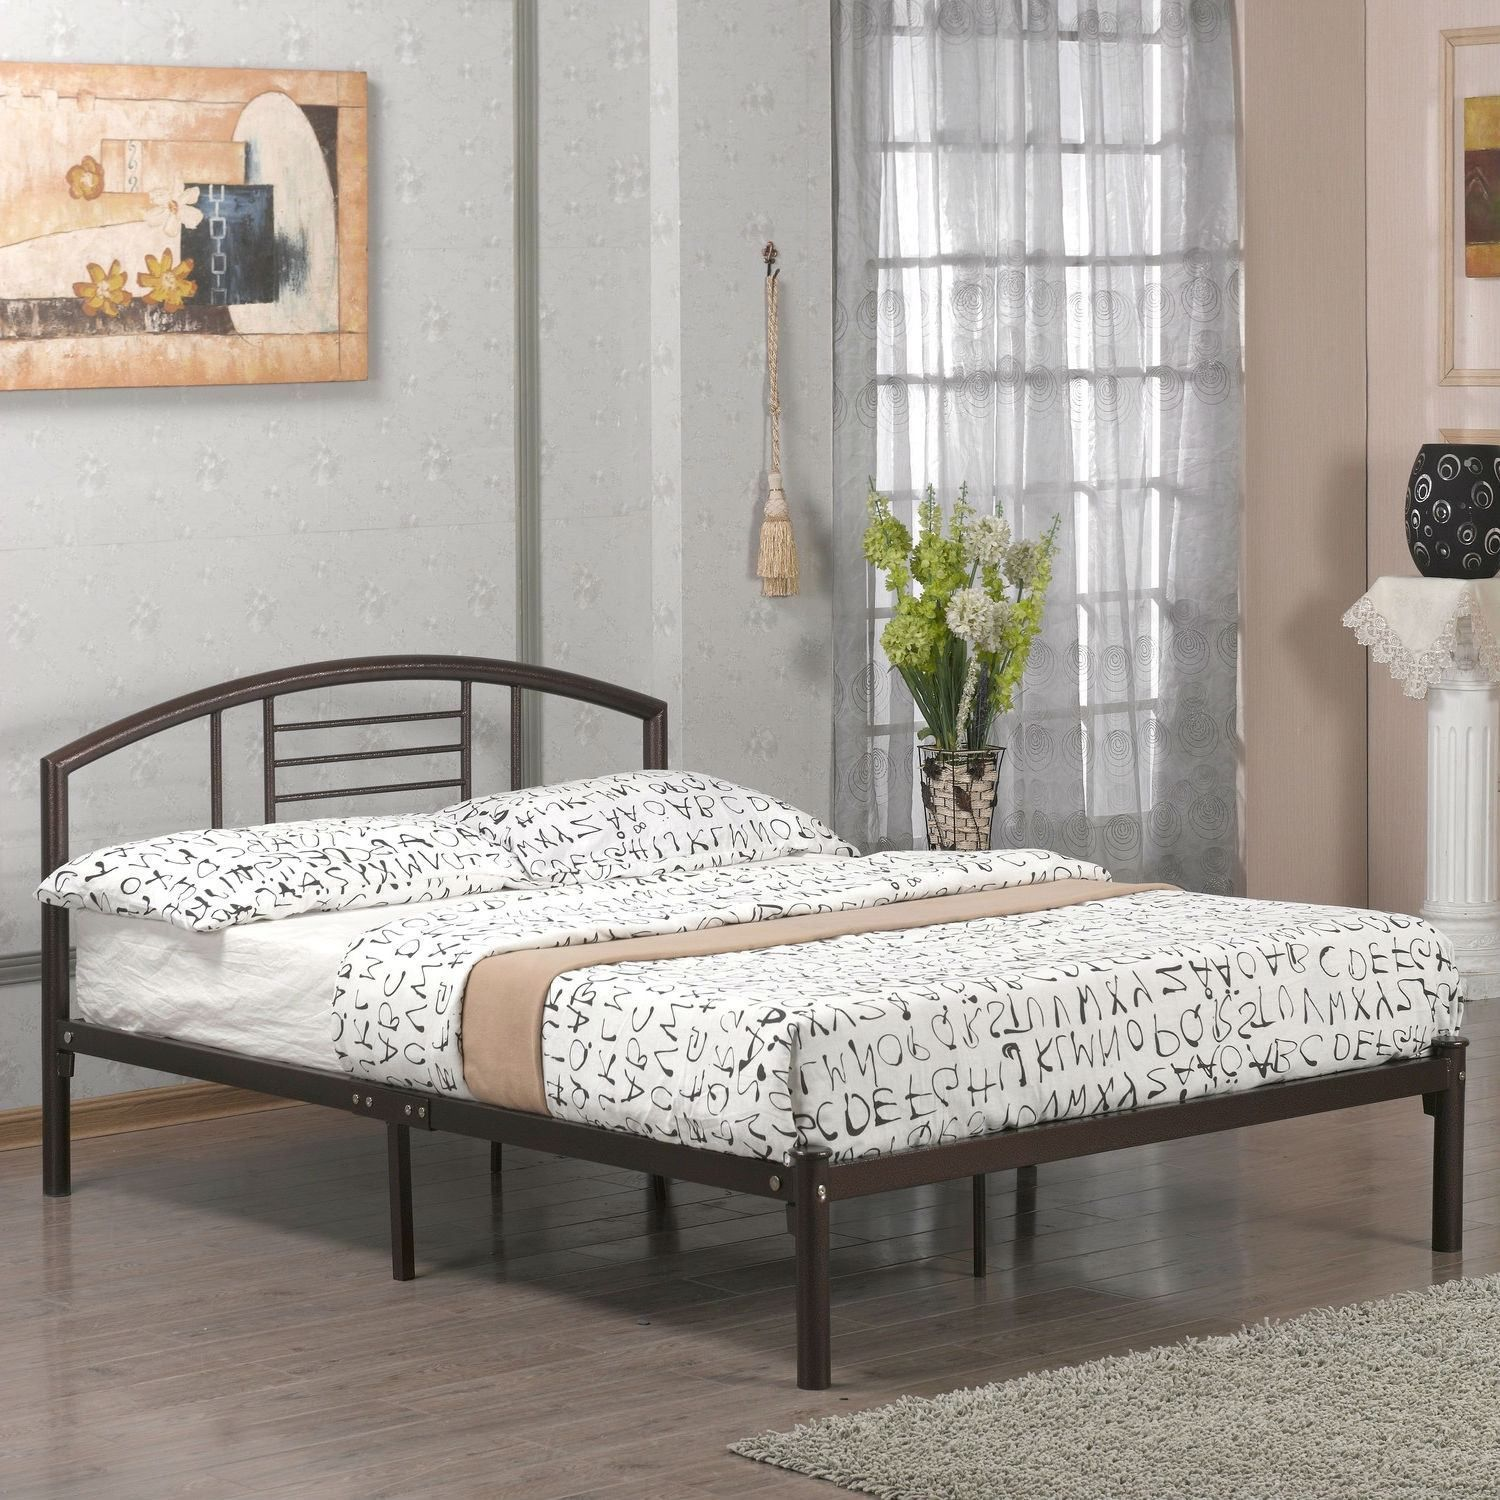 Queen size Contemporary Metal Platform Bed Frame with